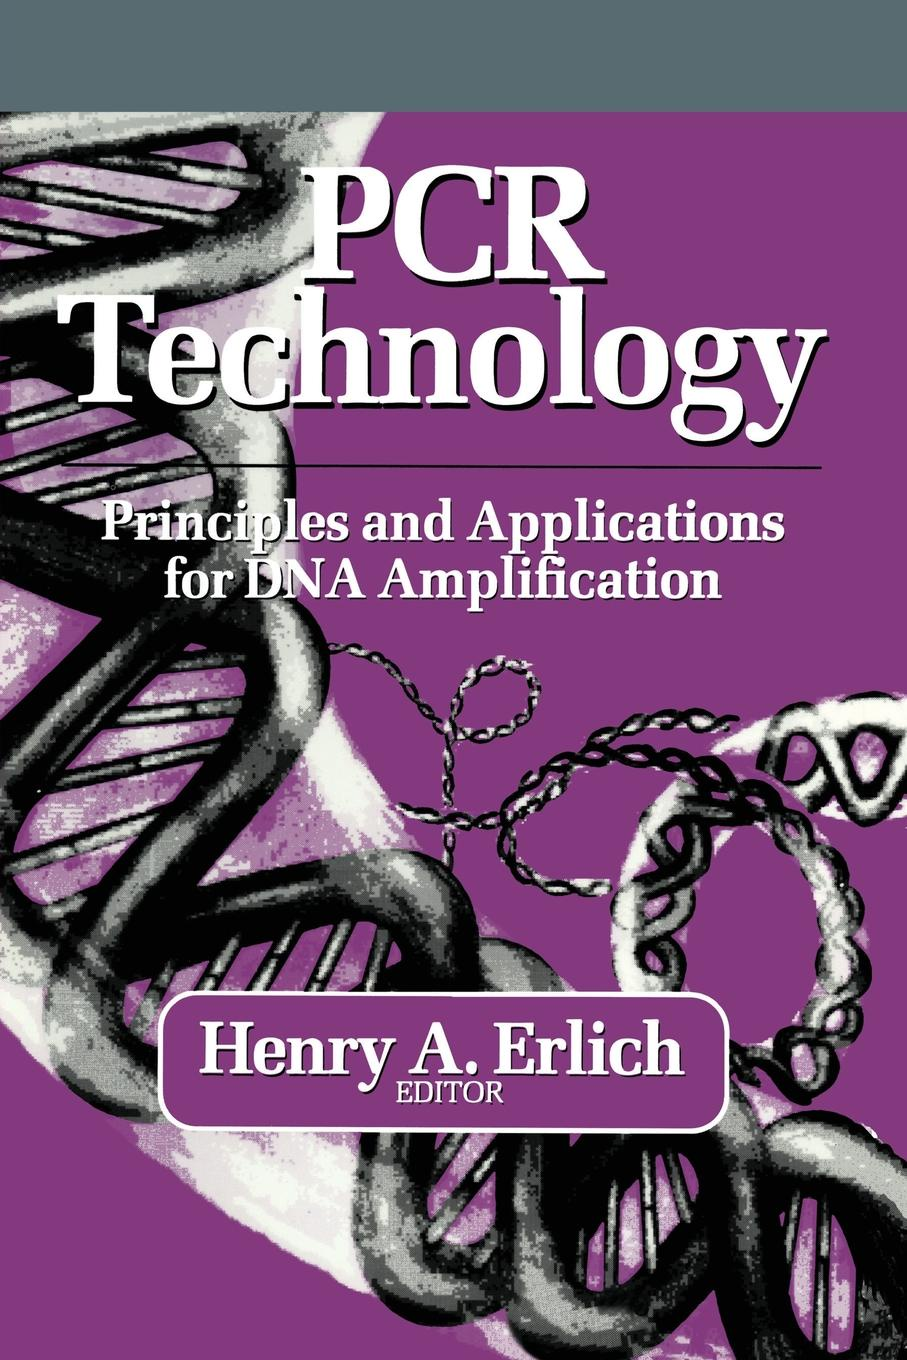 лучшая цена Henry Erlich PCR Technology. Principles and Applications for DNA Amplification